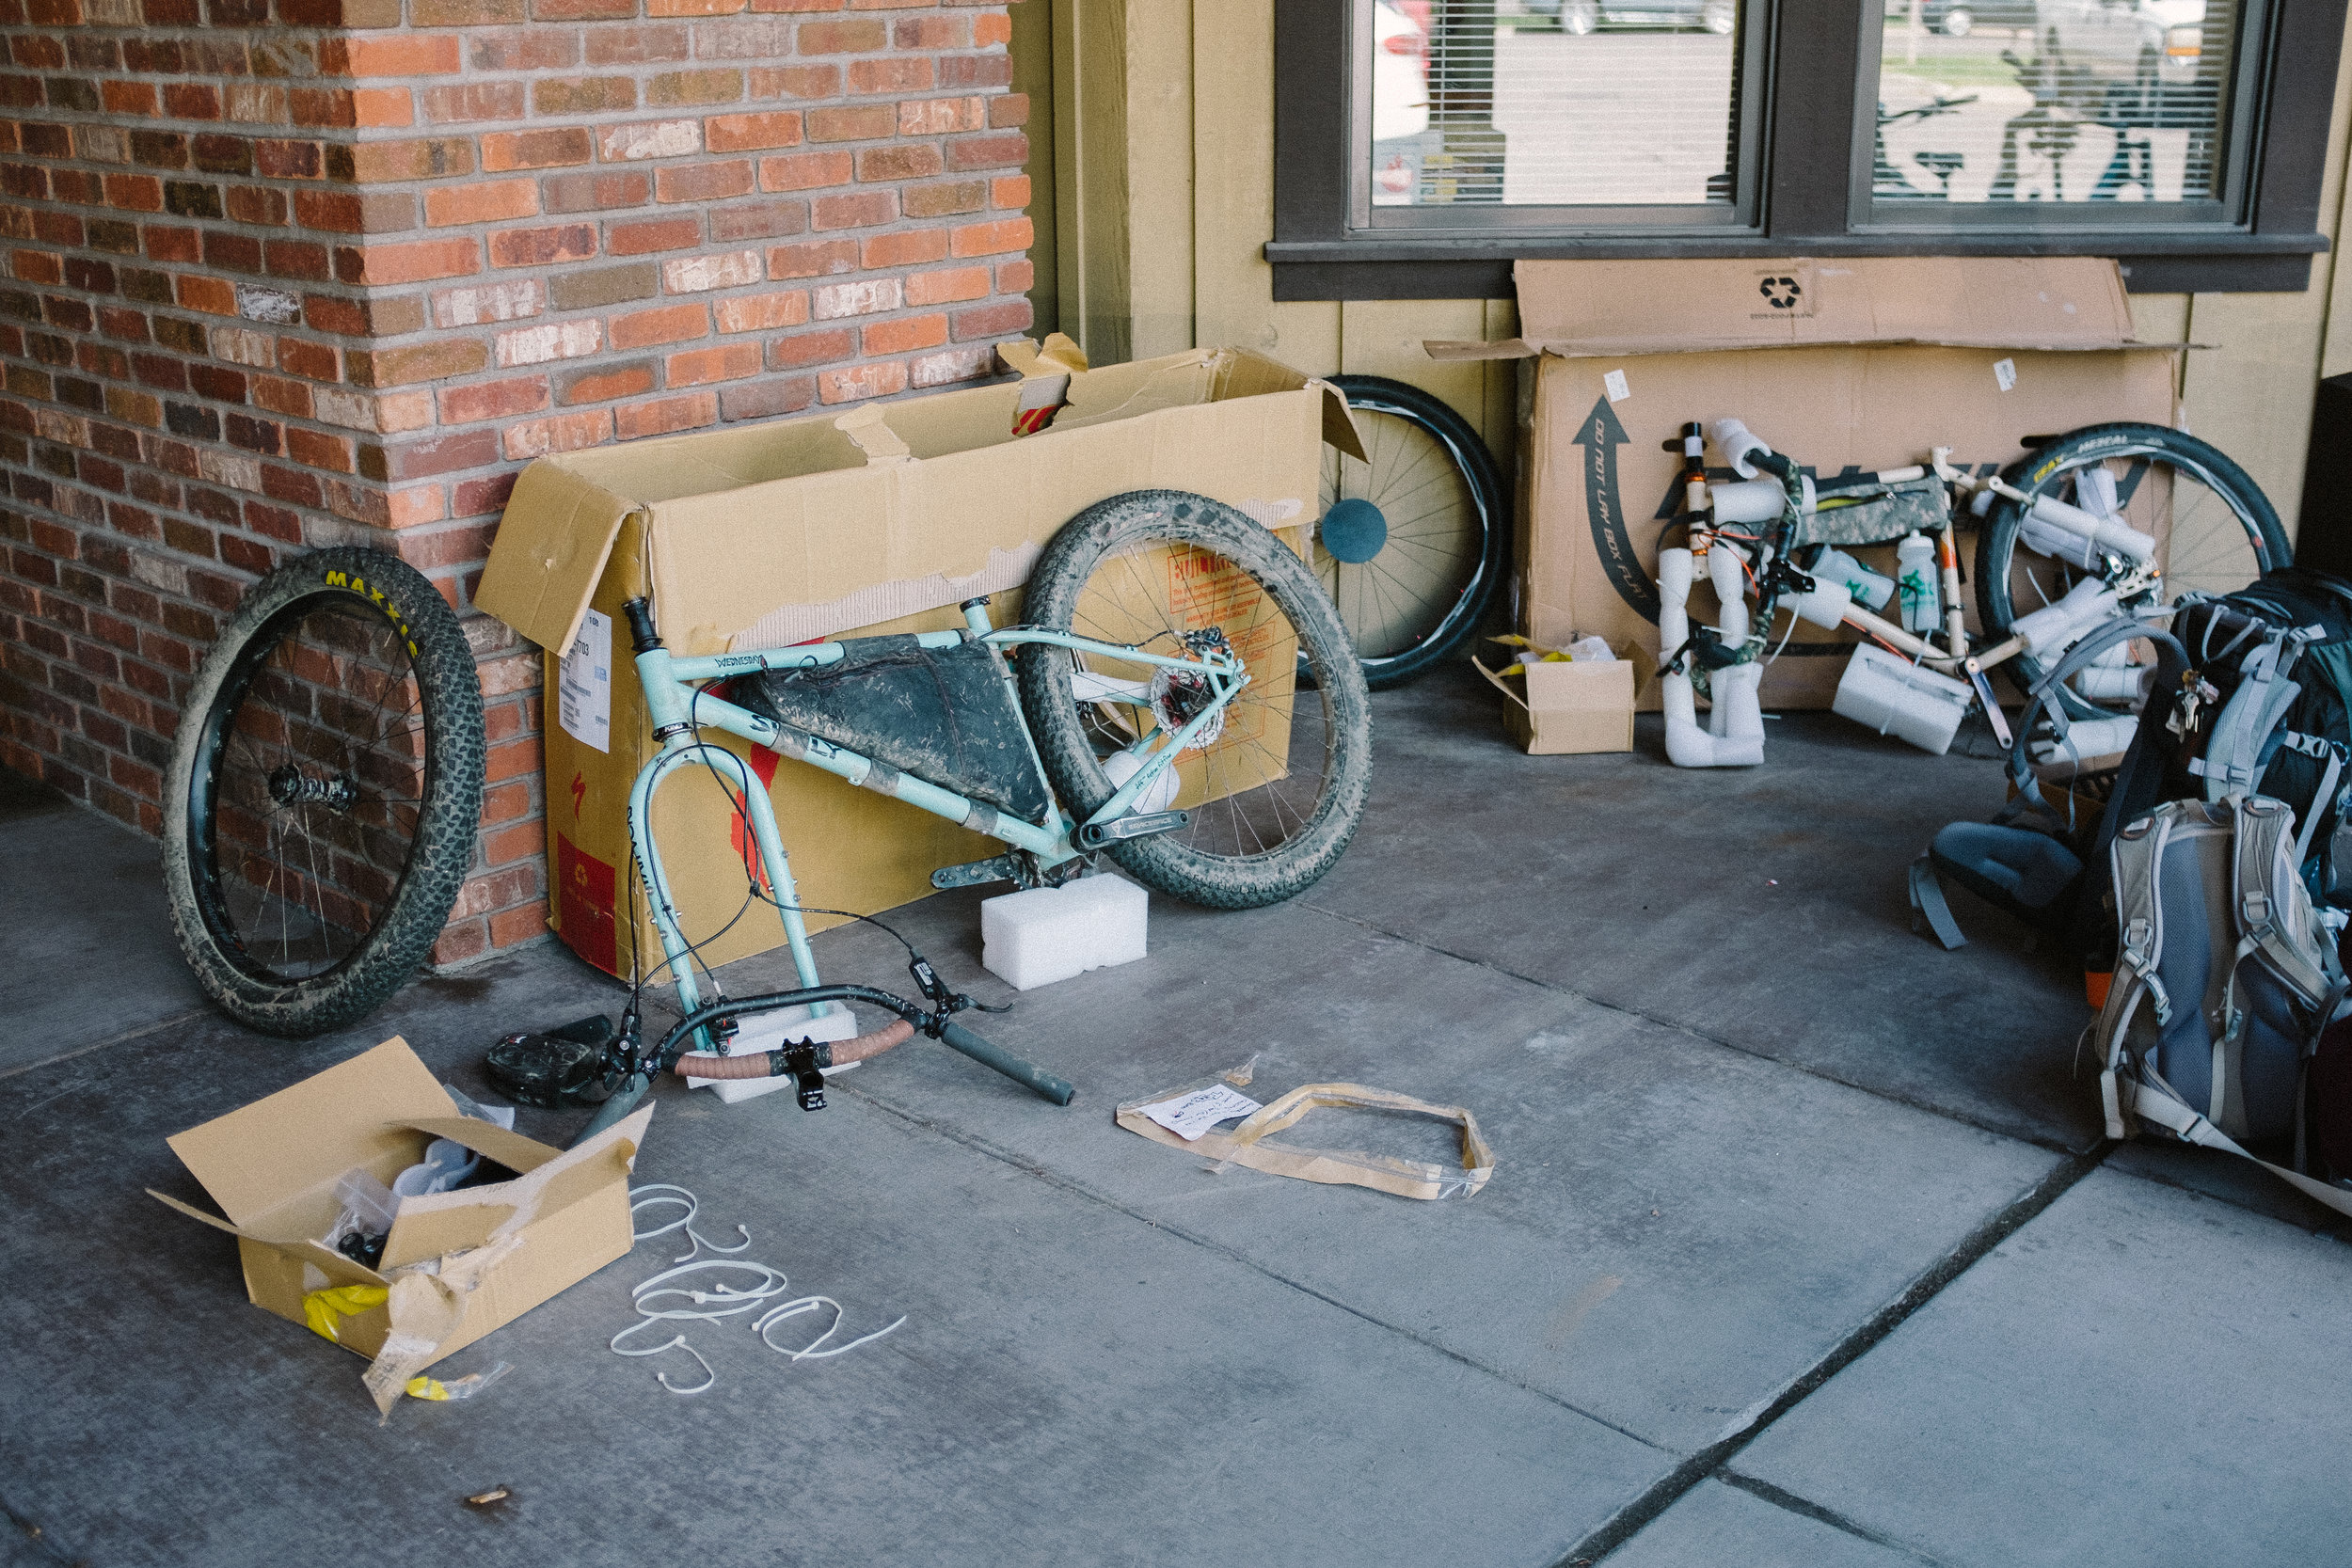 We shipped our bikes to a shop in Jackson Hole and built them in the parking lot. We were certainly a spectacle.